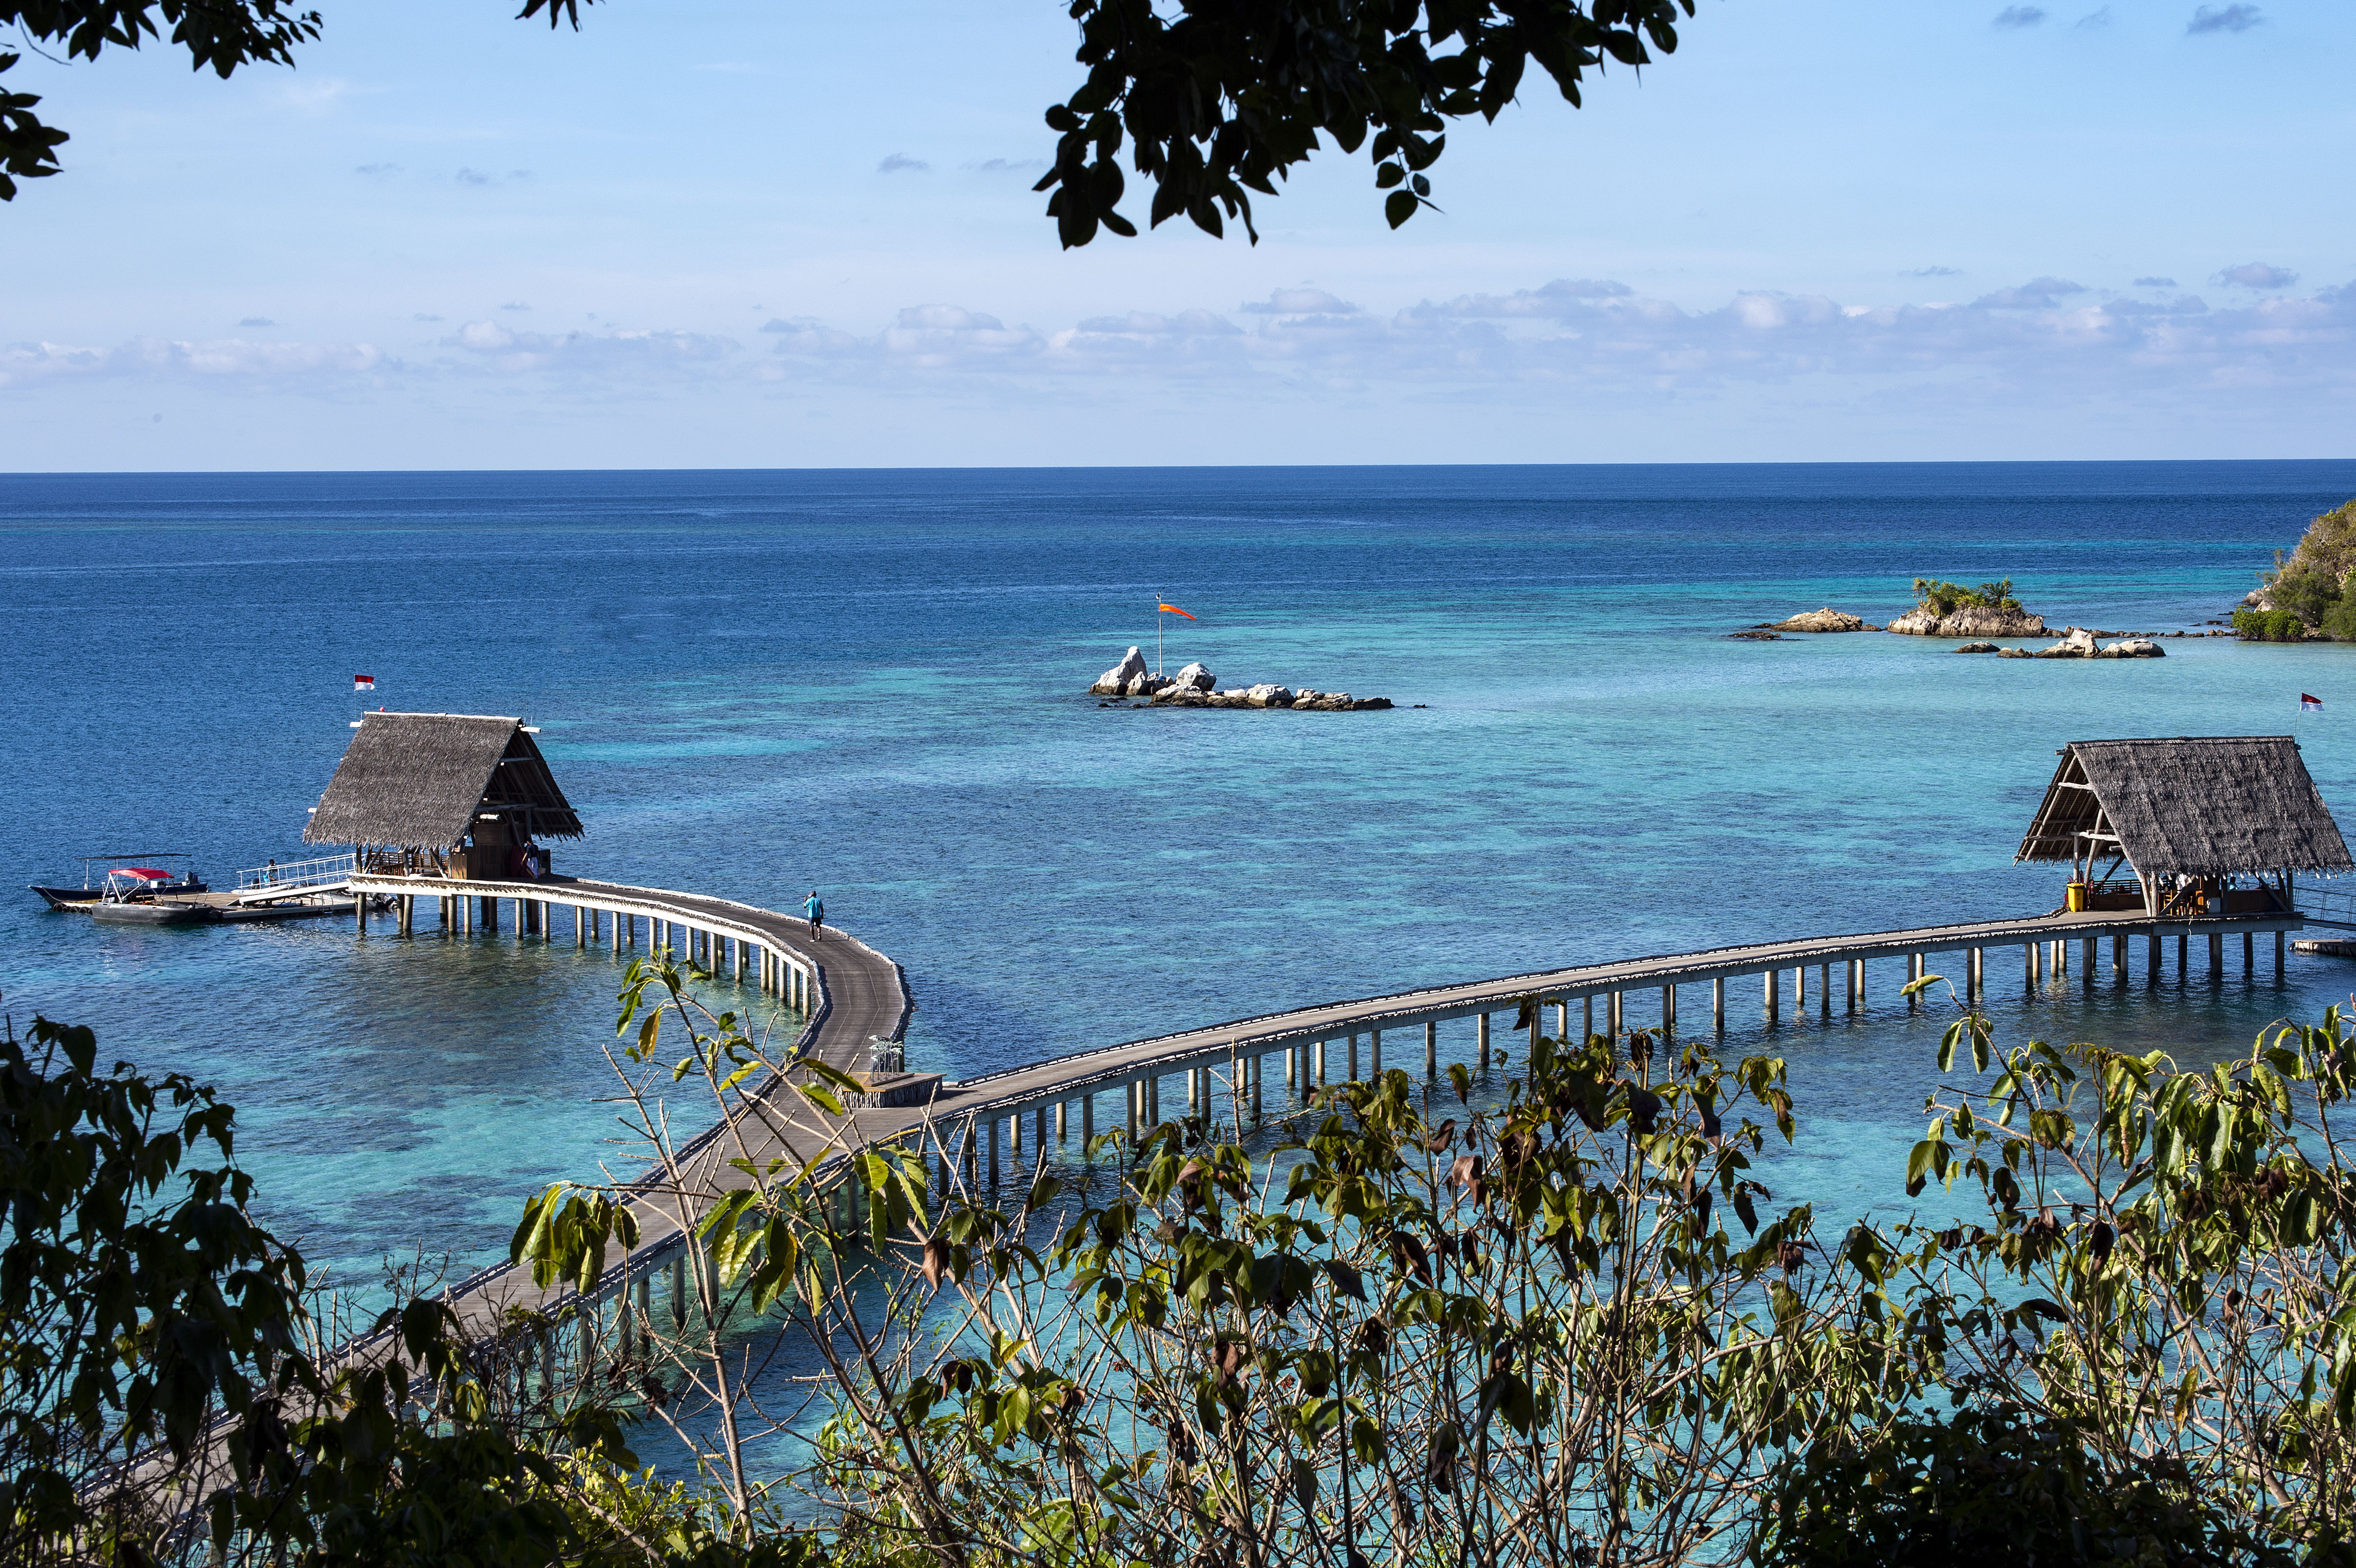 jetty_thatched_roofs_blue_lagoon_from_treetops